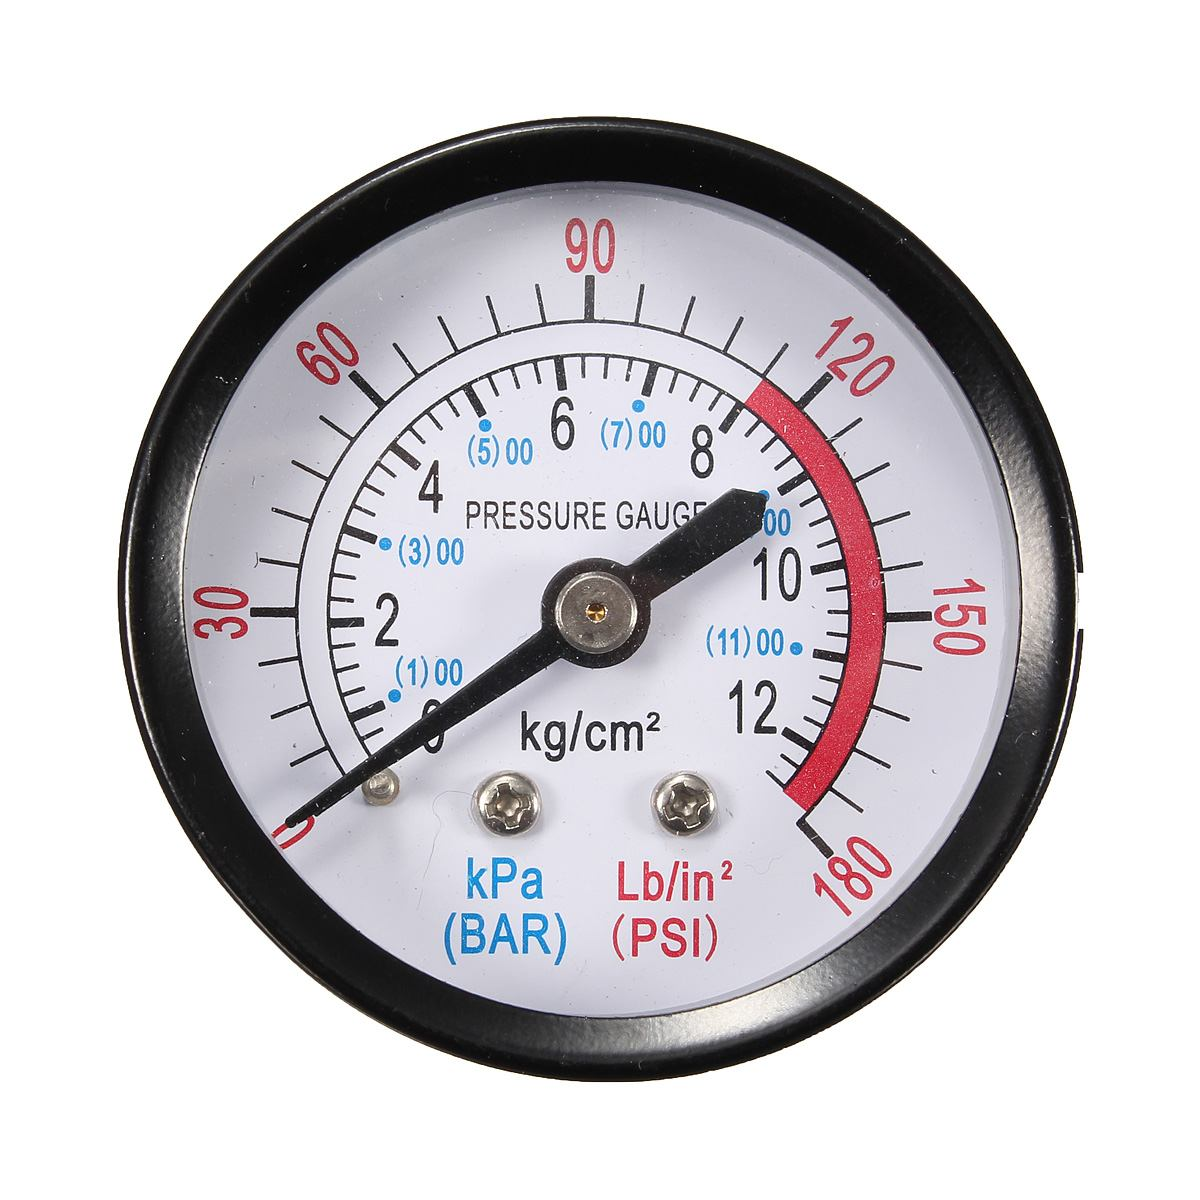 Bar Air Pressure Gauge 13mm 1/4 BSP Thread 0-180 PSI 0-12 Manometer Double Scale For Air Compressor